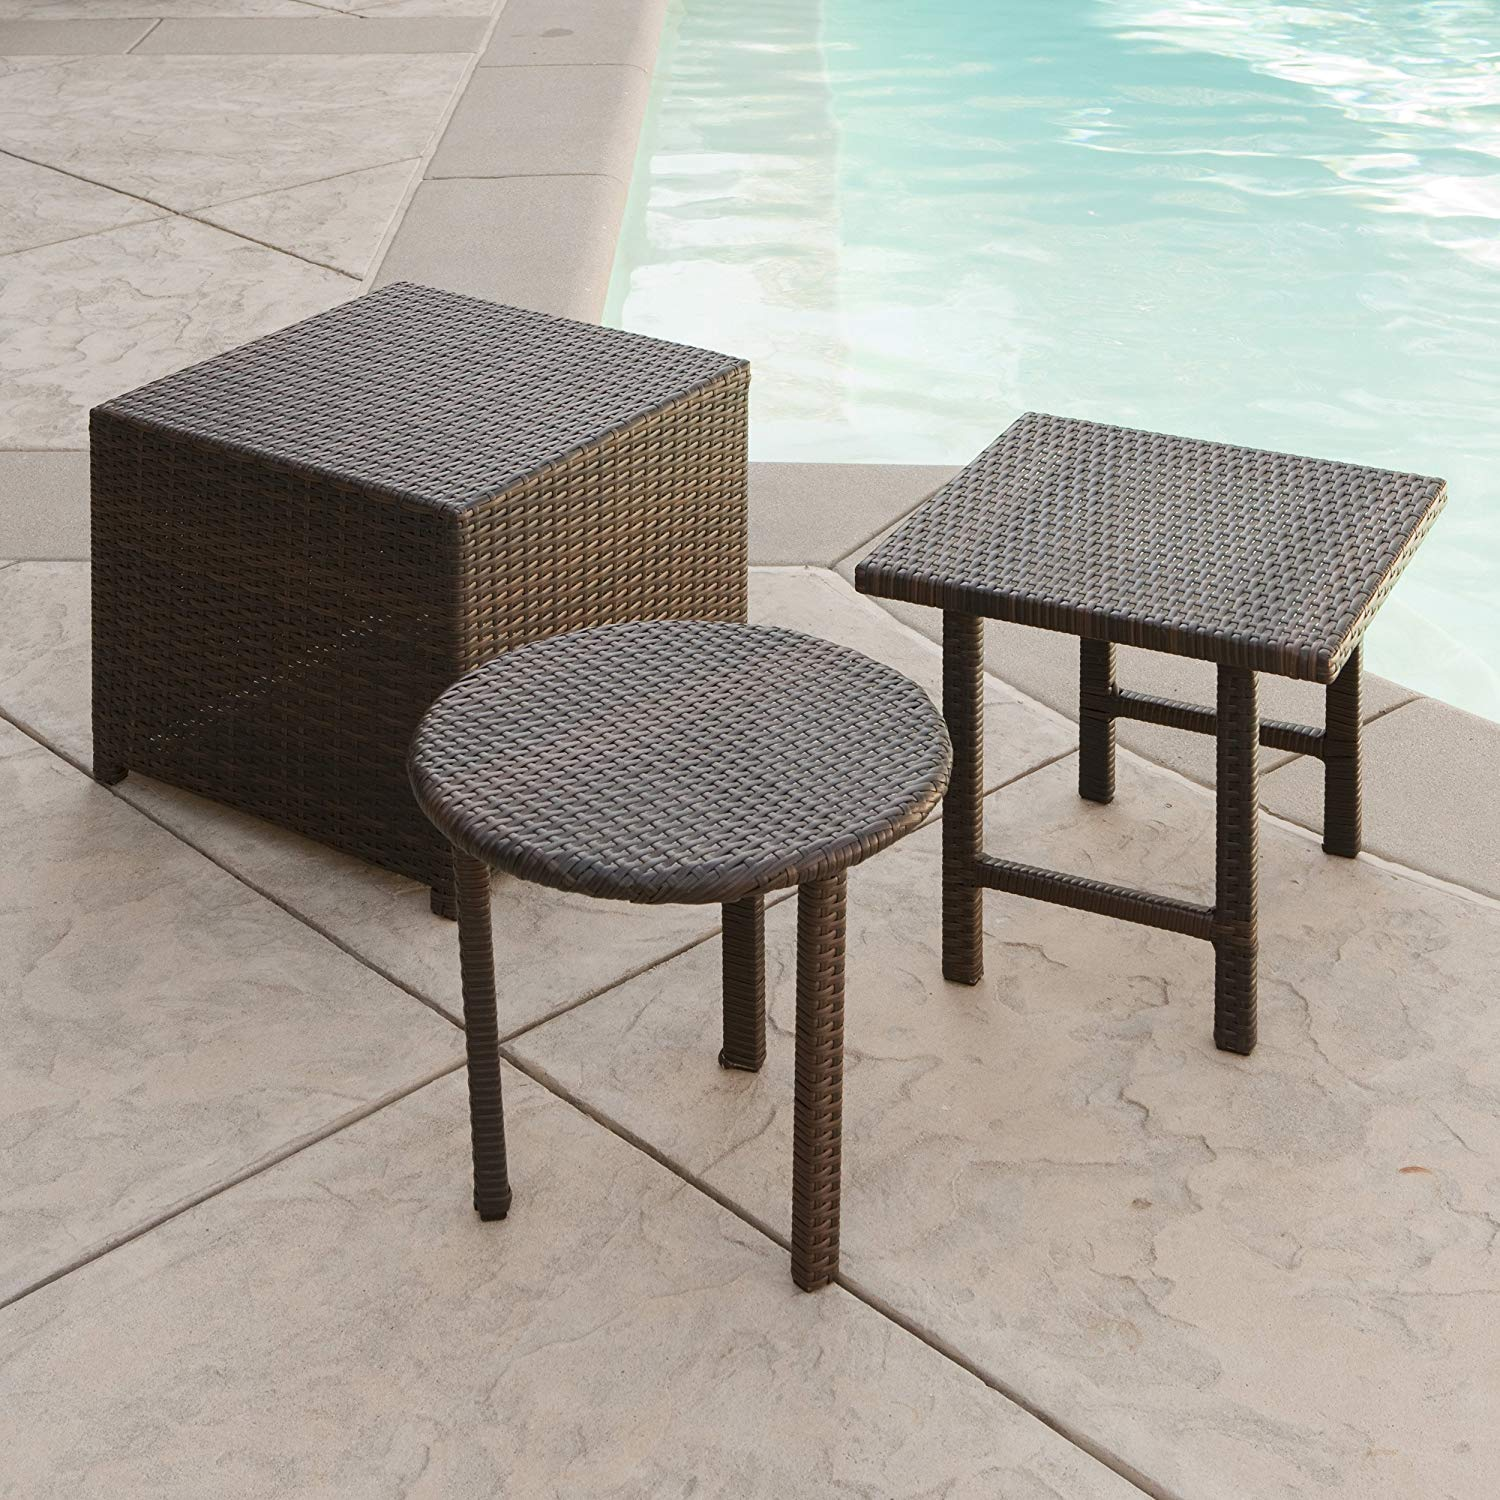 best selling palmilla wicker table set multibrown small patio accent tables side garden outdoor dining placemats dale tiffany hummingbird lamp bunnings seat cushions ikea living